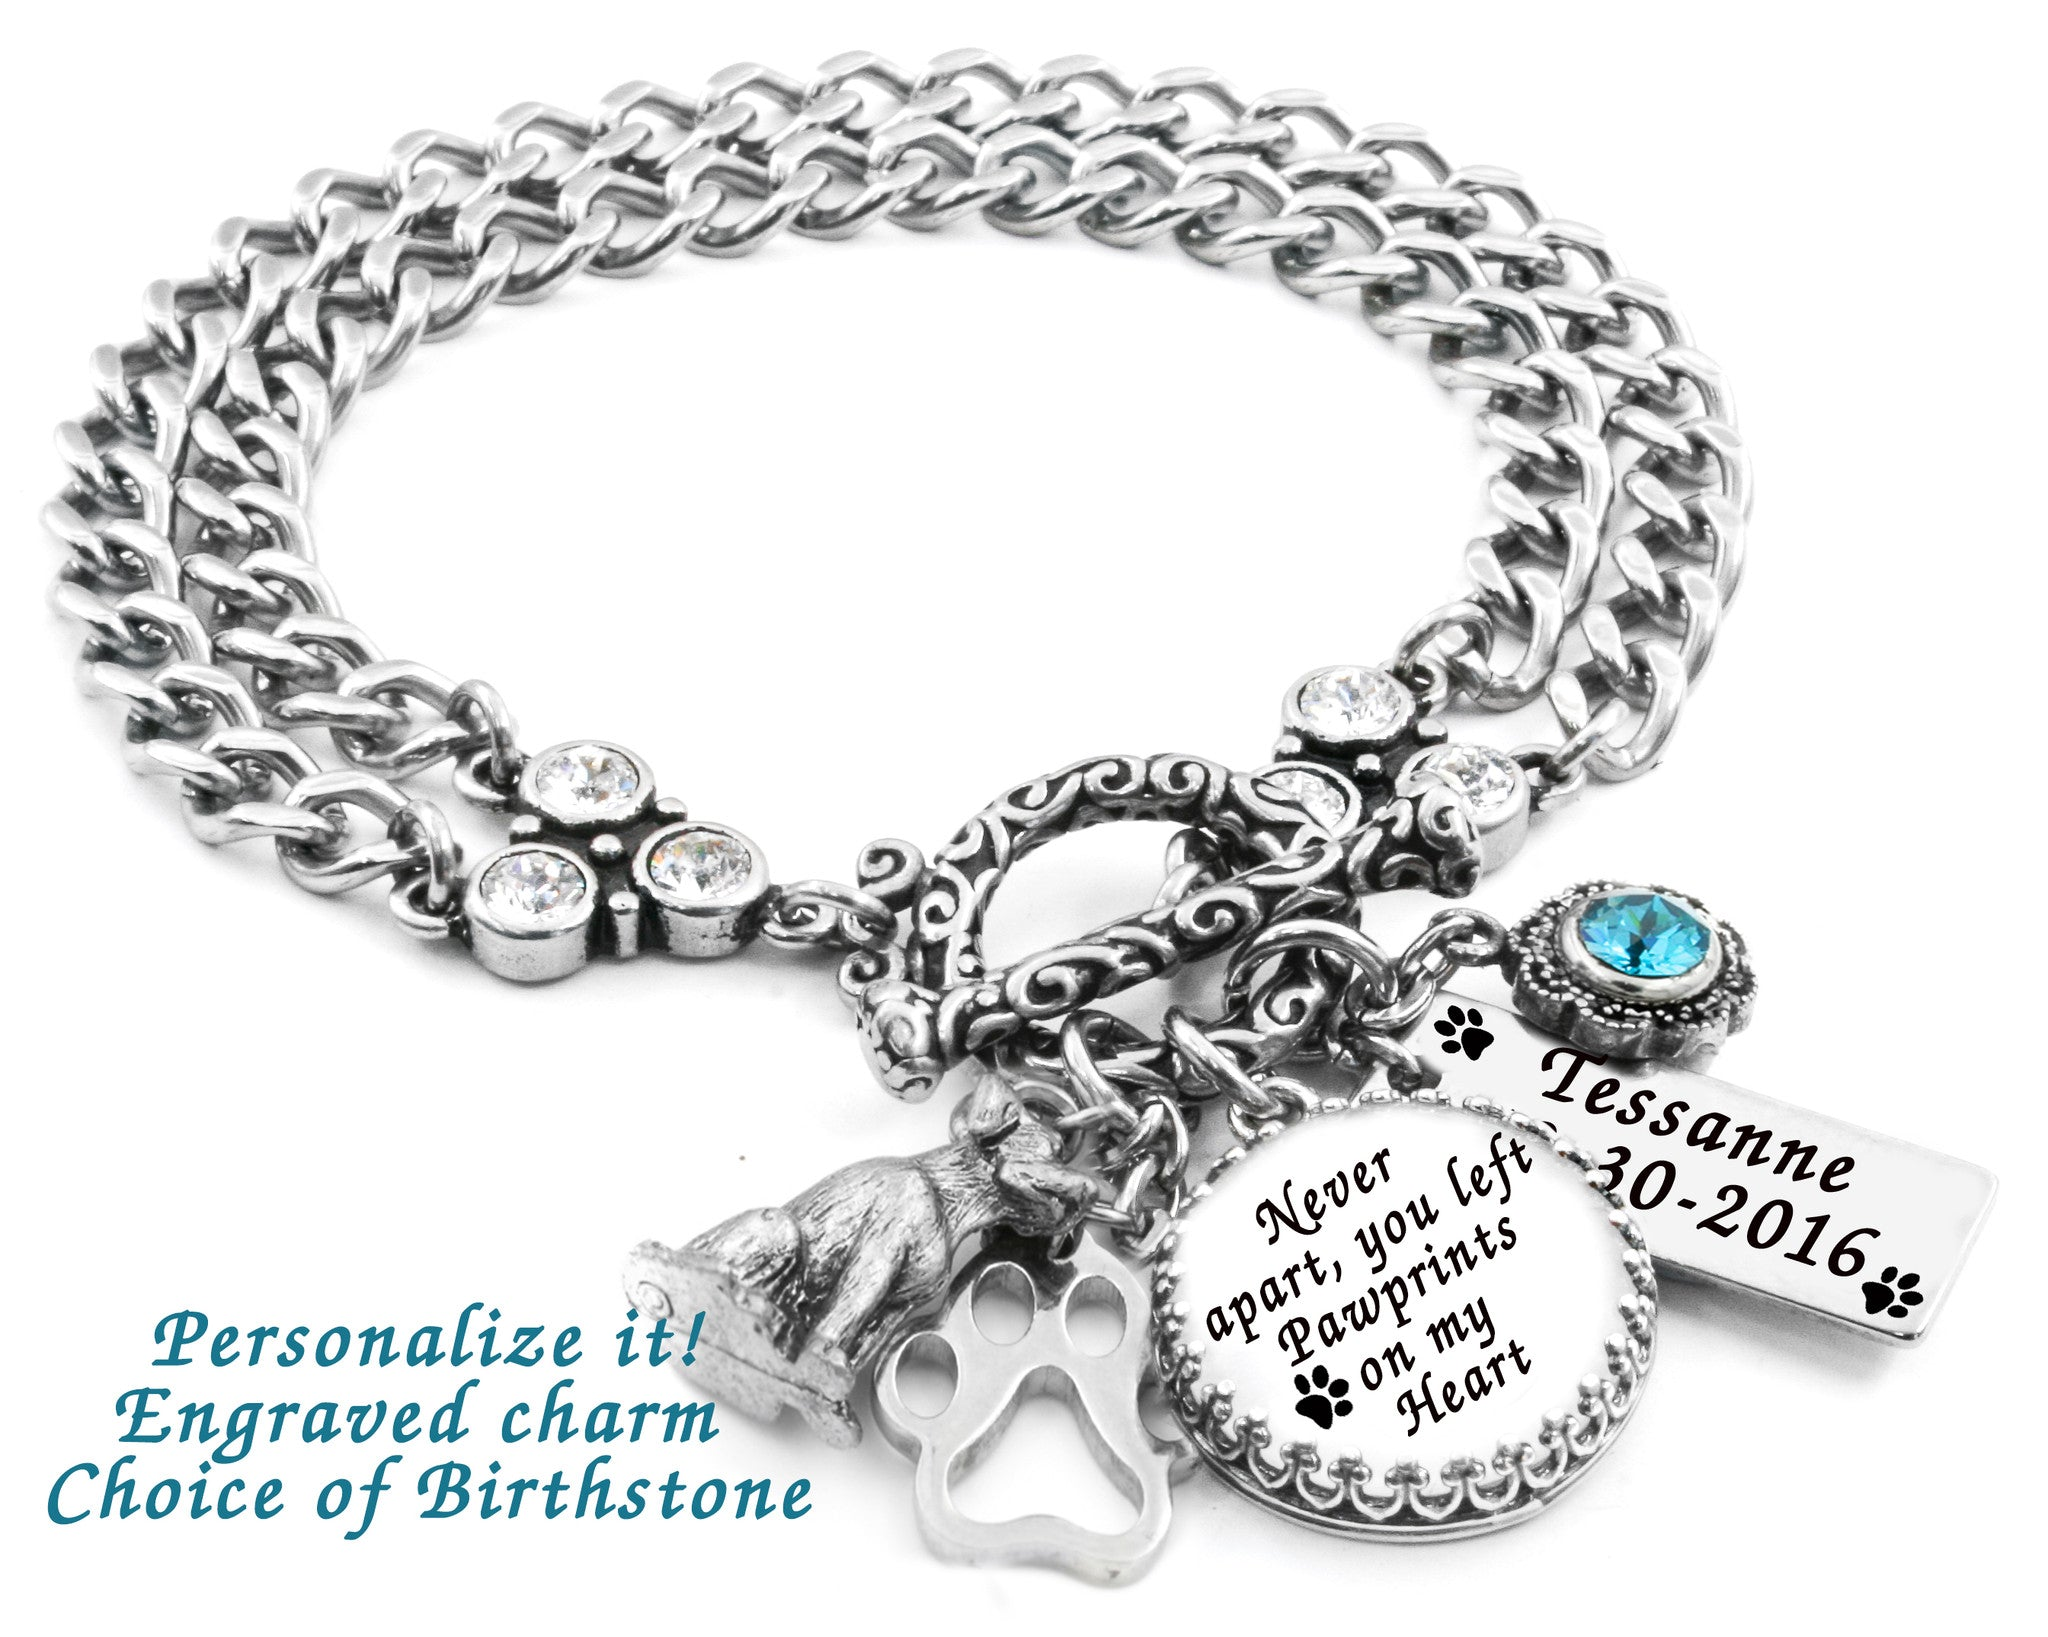 Personalized Dog Breed Jewelry Engraved Dogs Name Pet Breed Charm Custom Pet Silhouette Bracelet